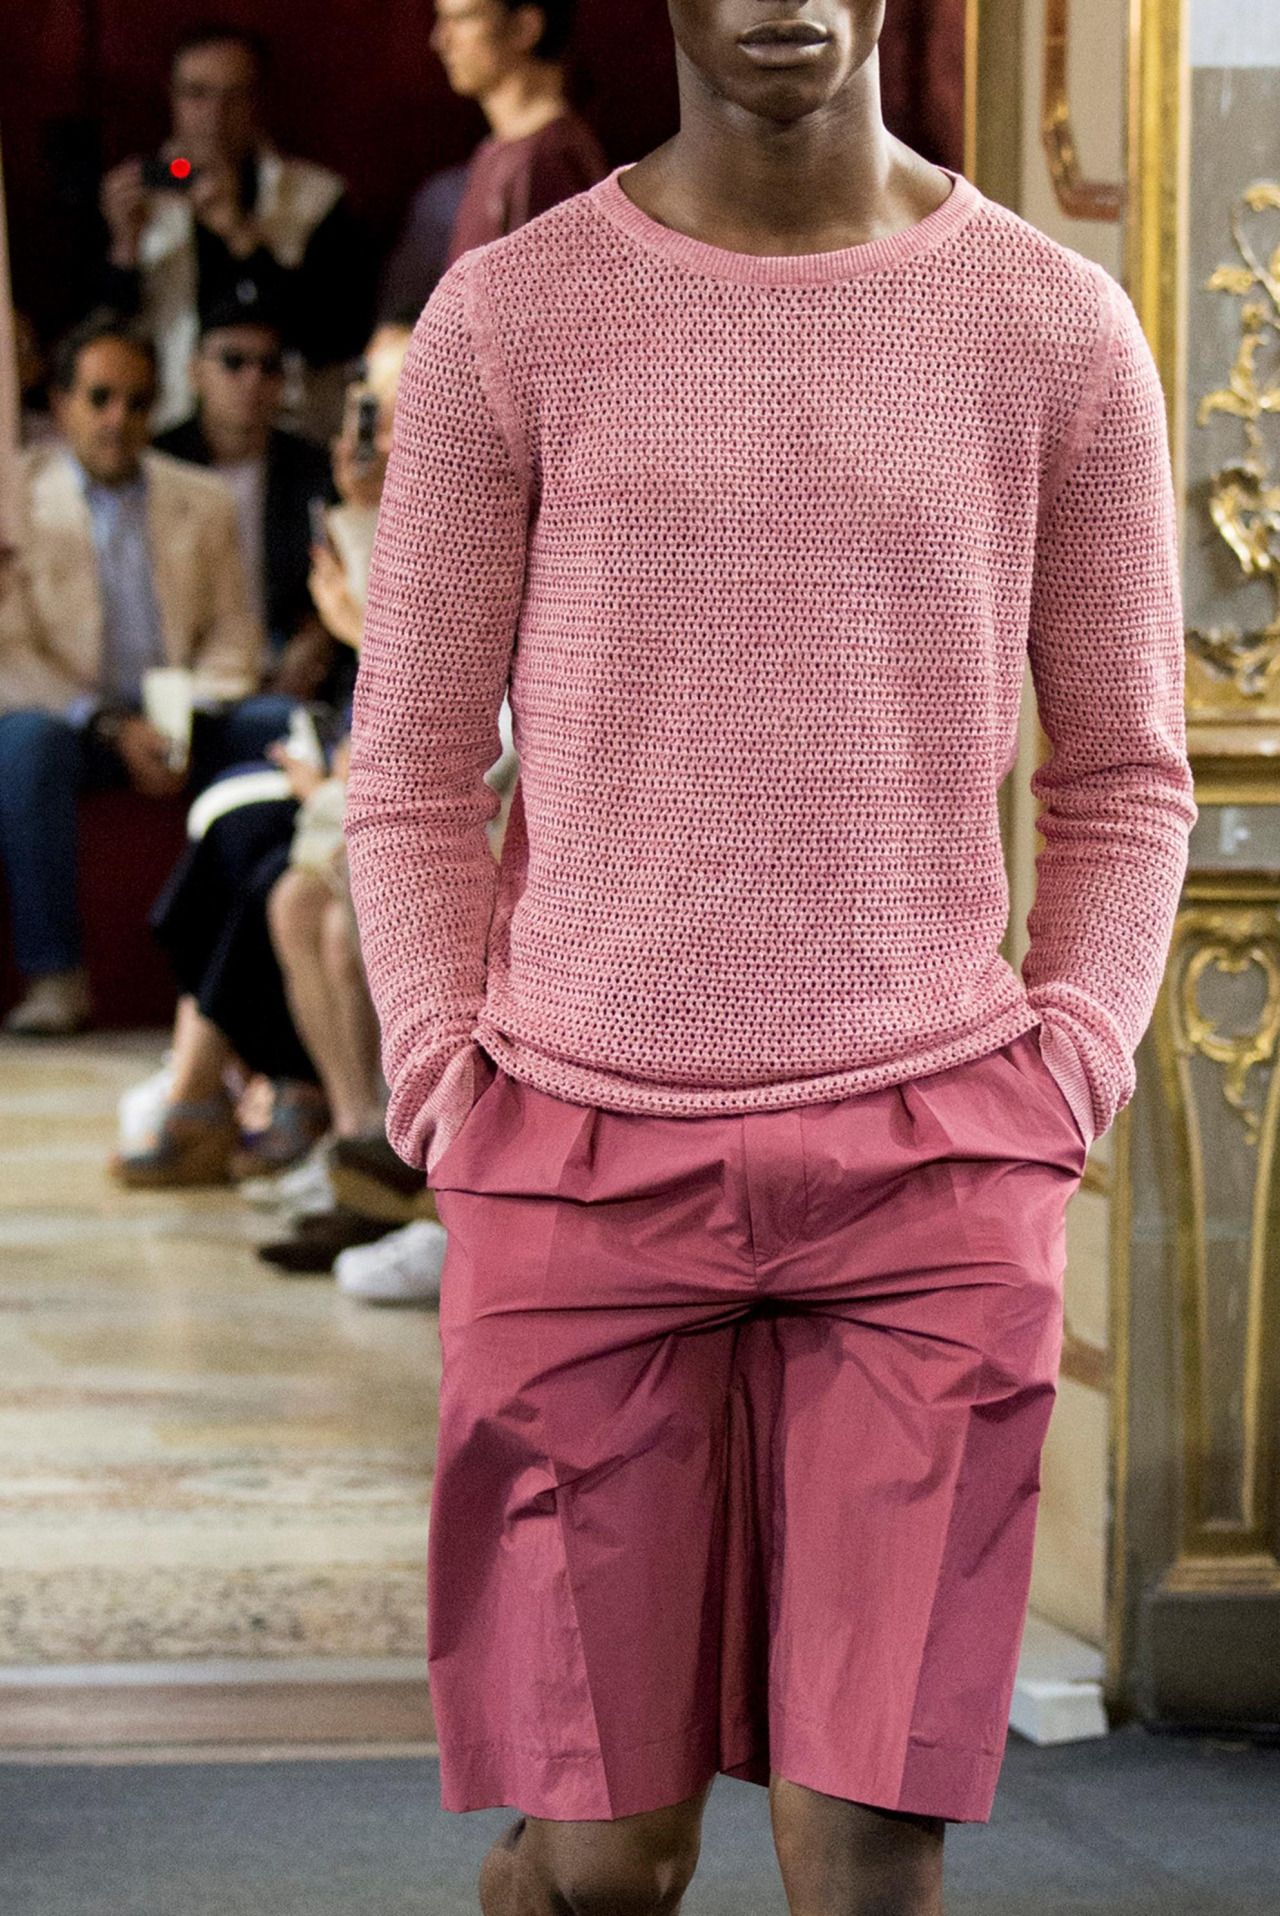 Corneliani S/S 2016 Menswear Milan Fashion Week